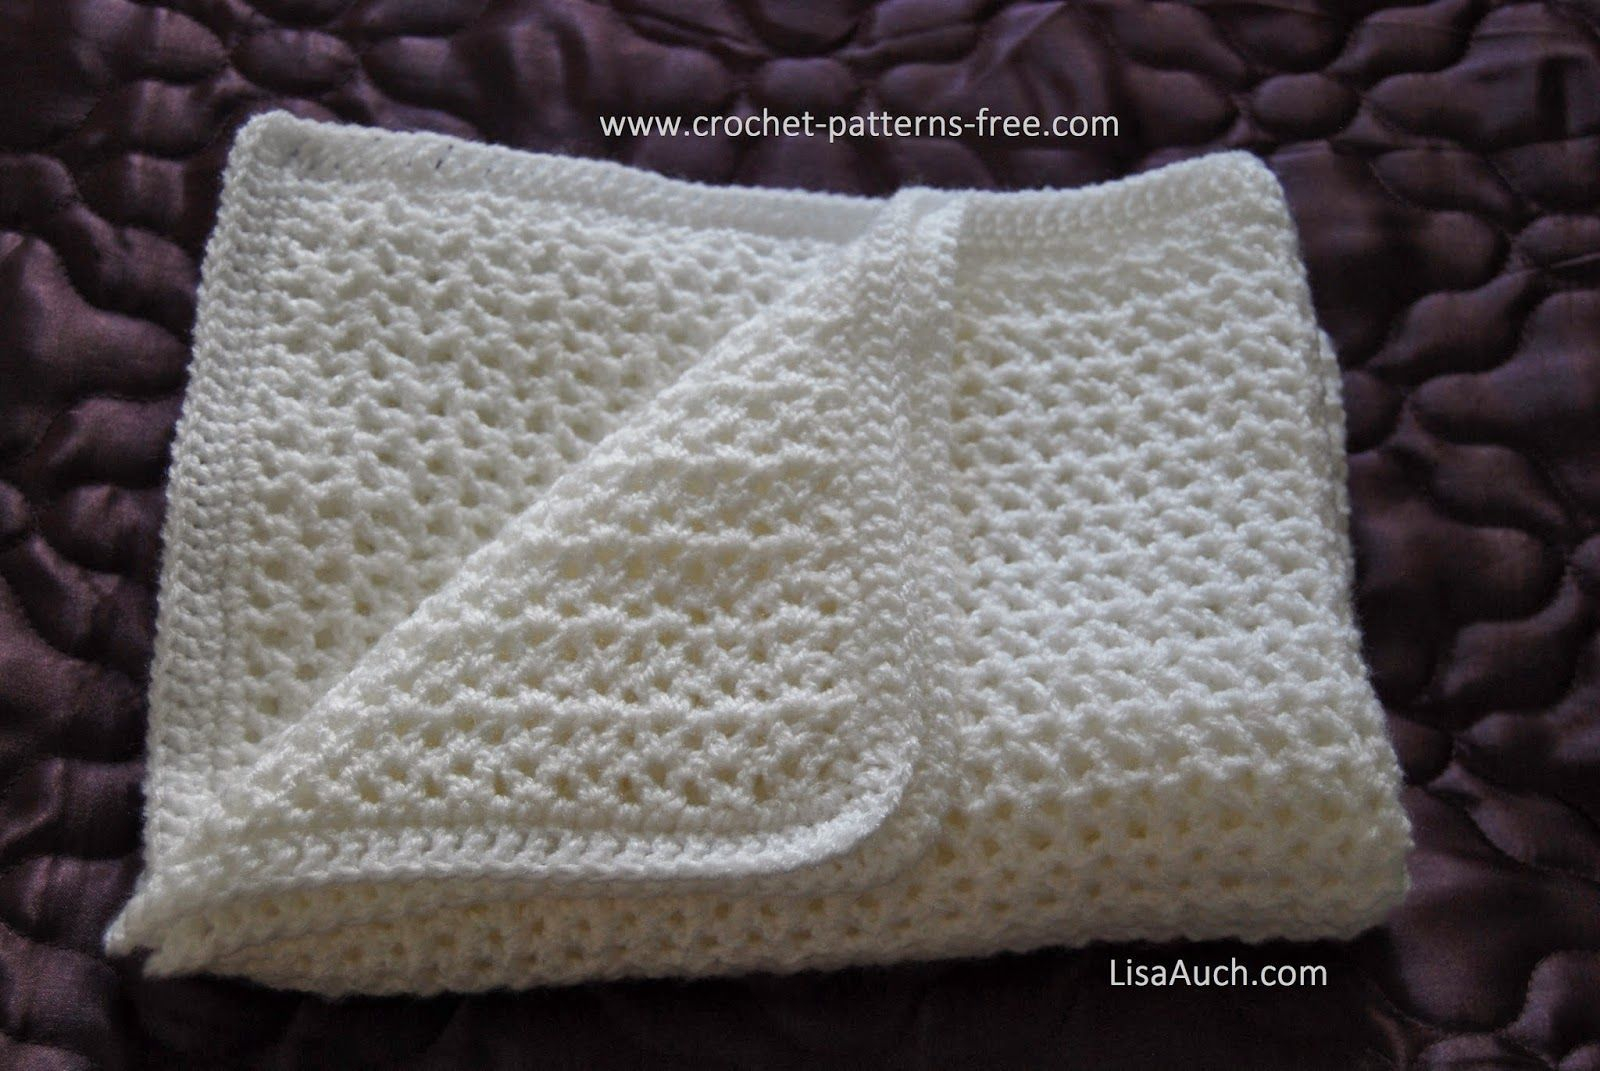 Begginer Crochet Projects Baby Blankets How To Crochet An Easy Ba Blanket Ideal For Beginners Free